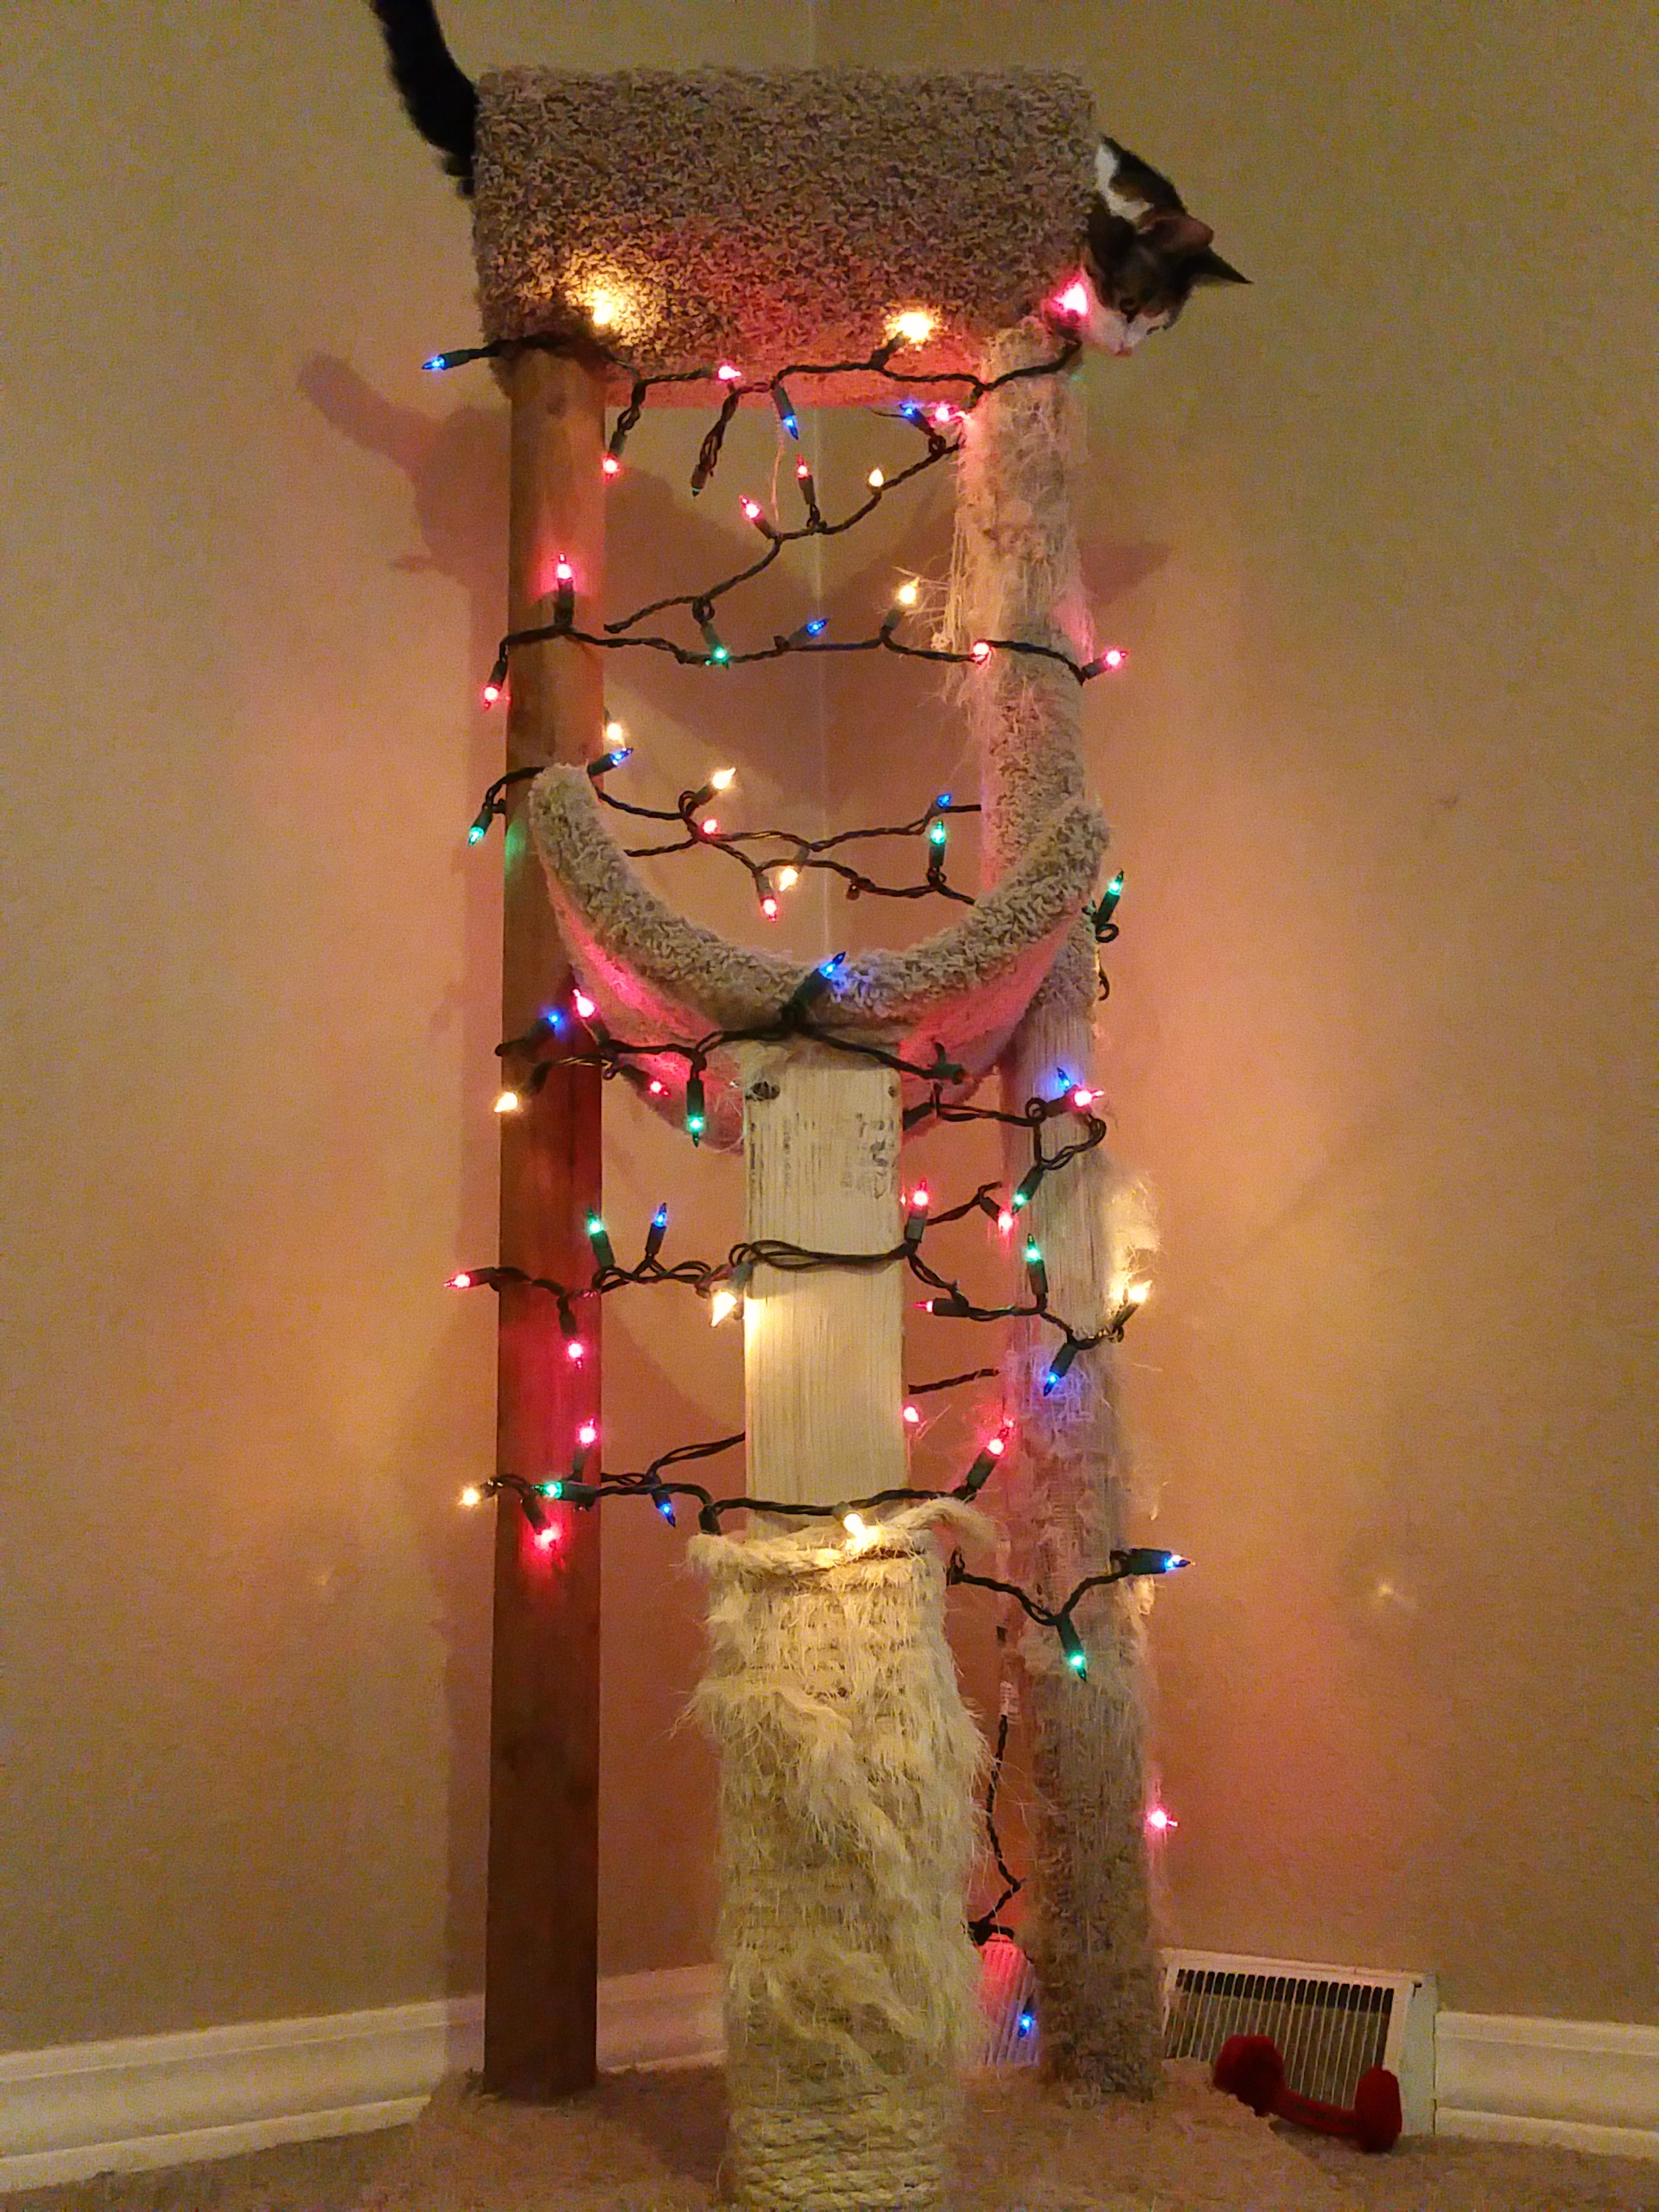 A cat tree wrapped in Christmas lights